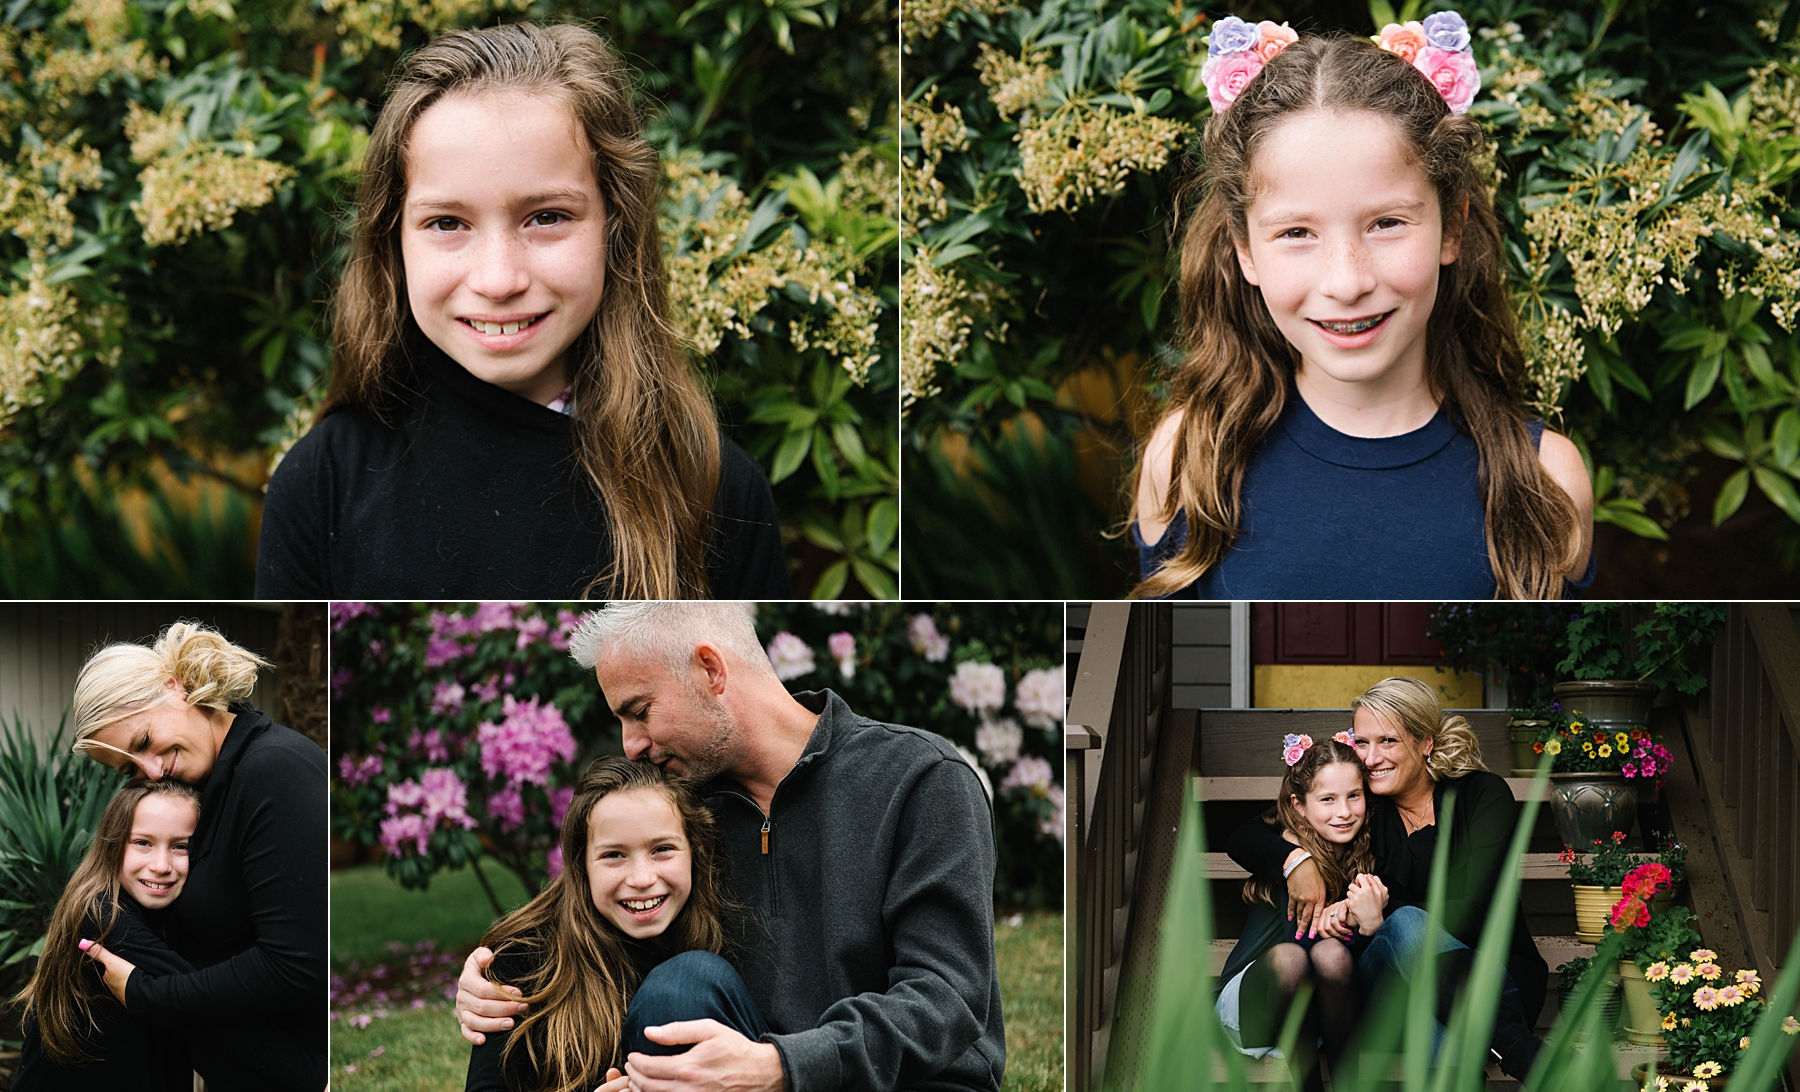 portraits of elementary aged girls and their parents